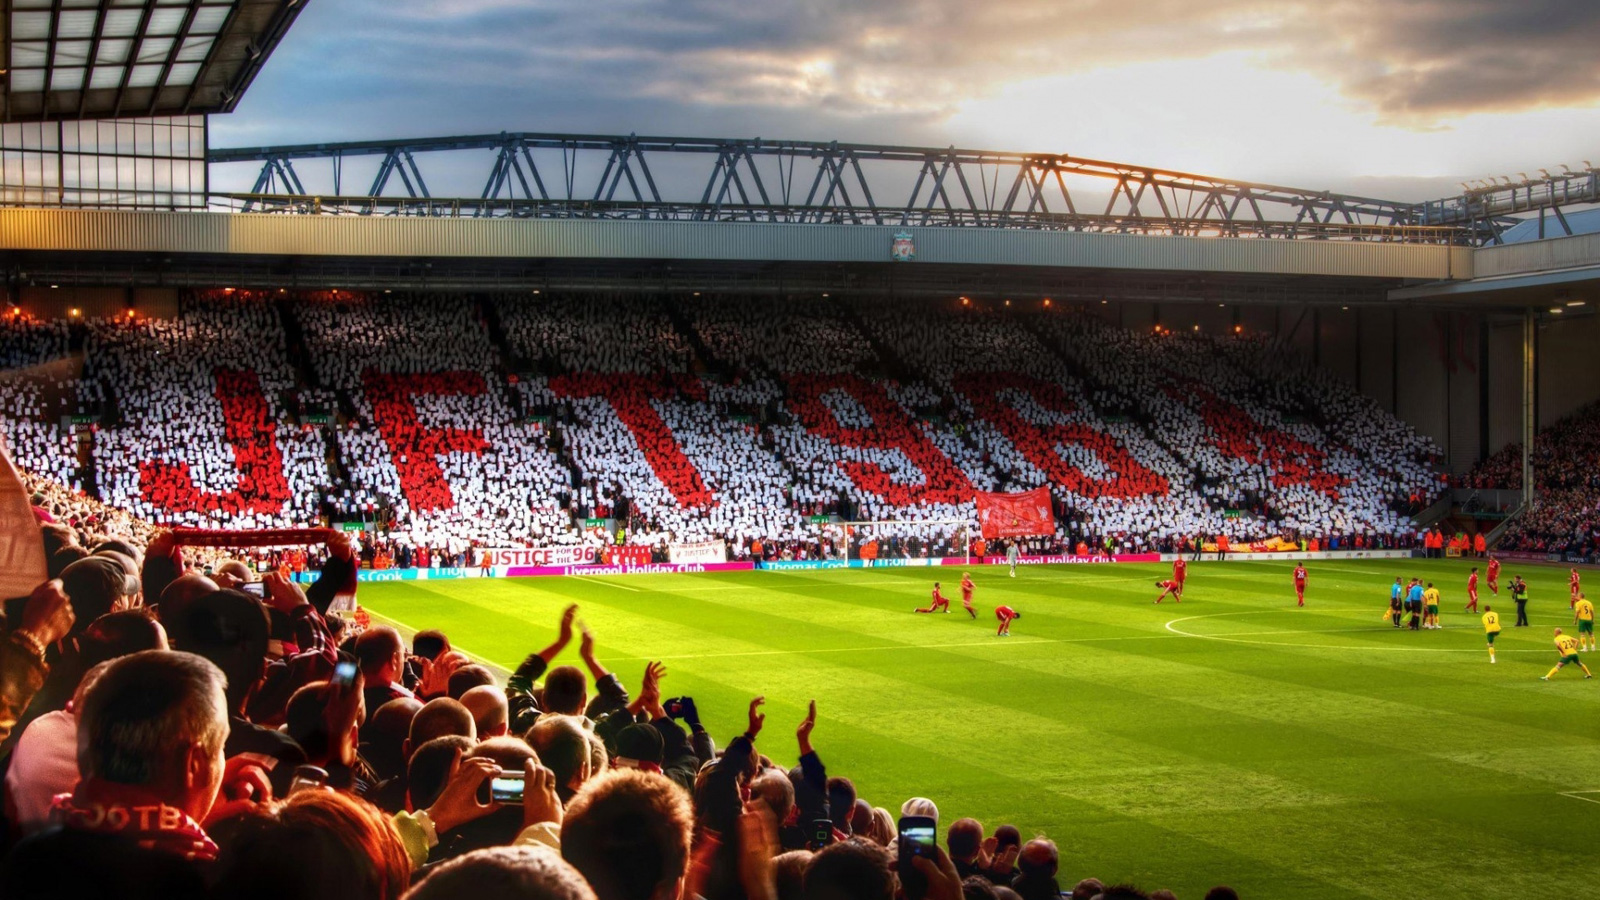 Anfield,The Champions